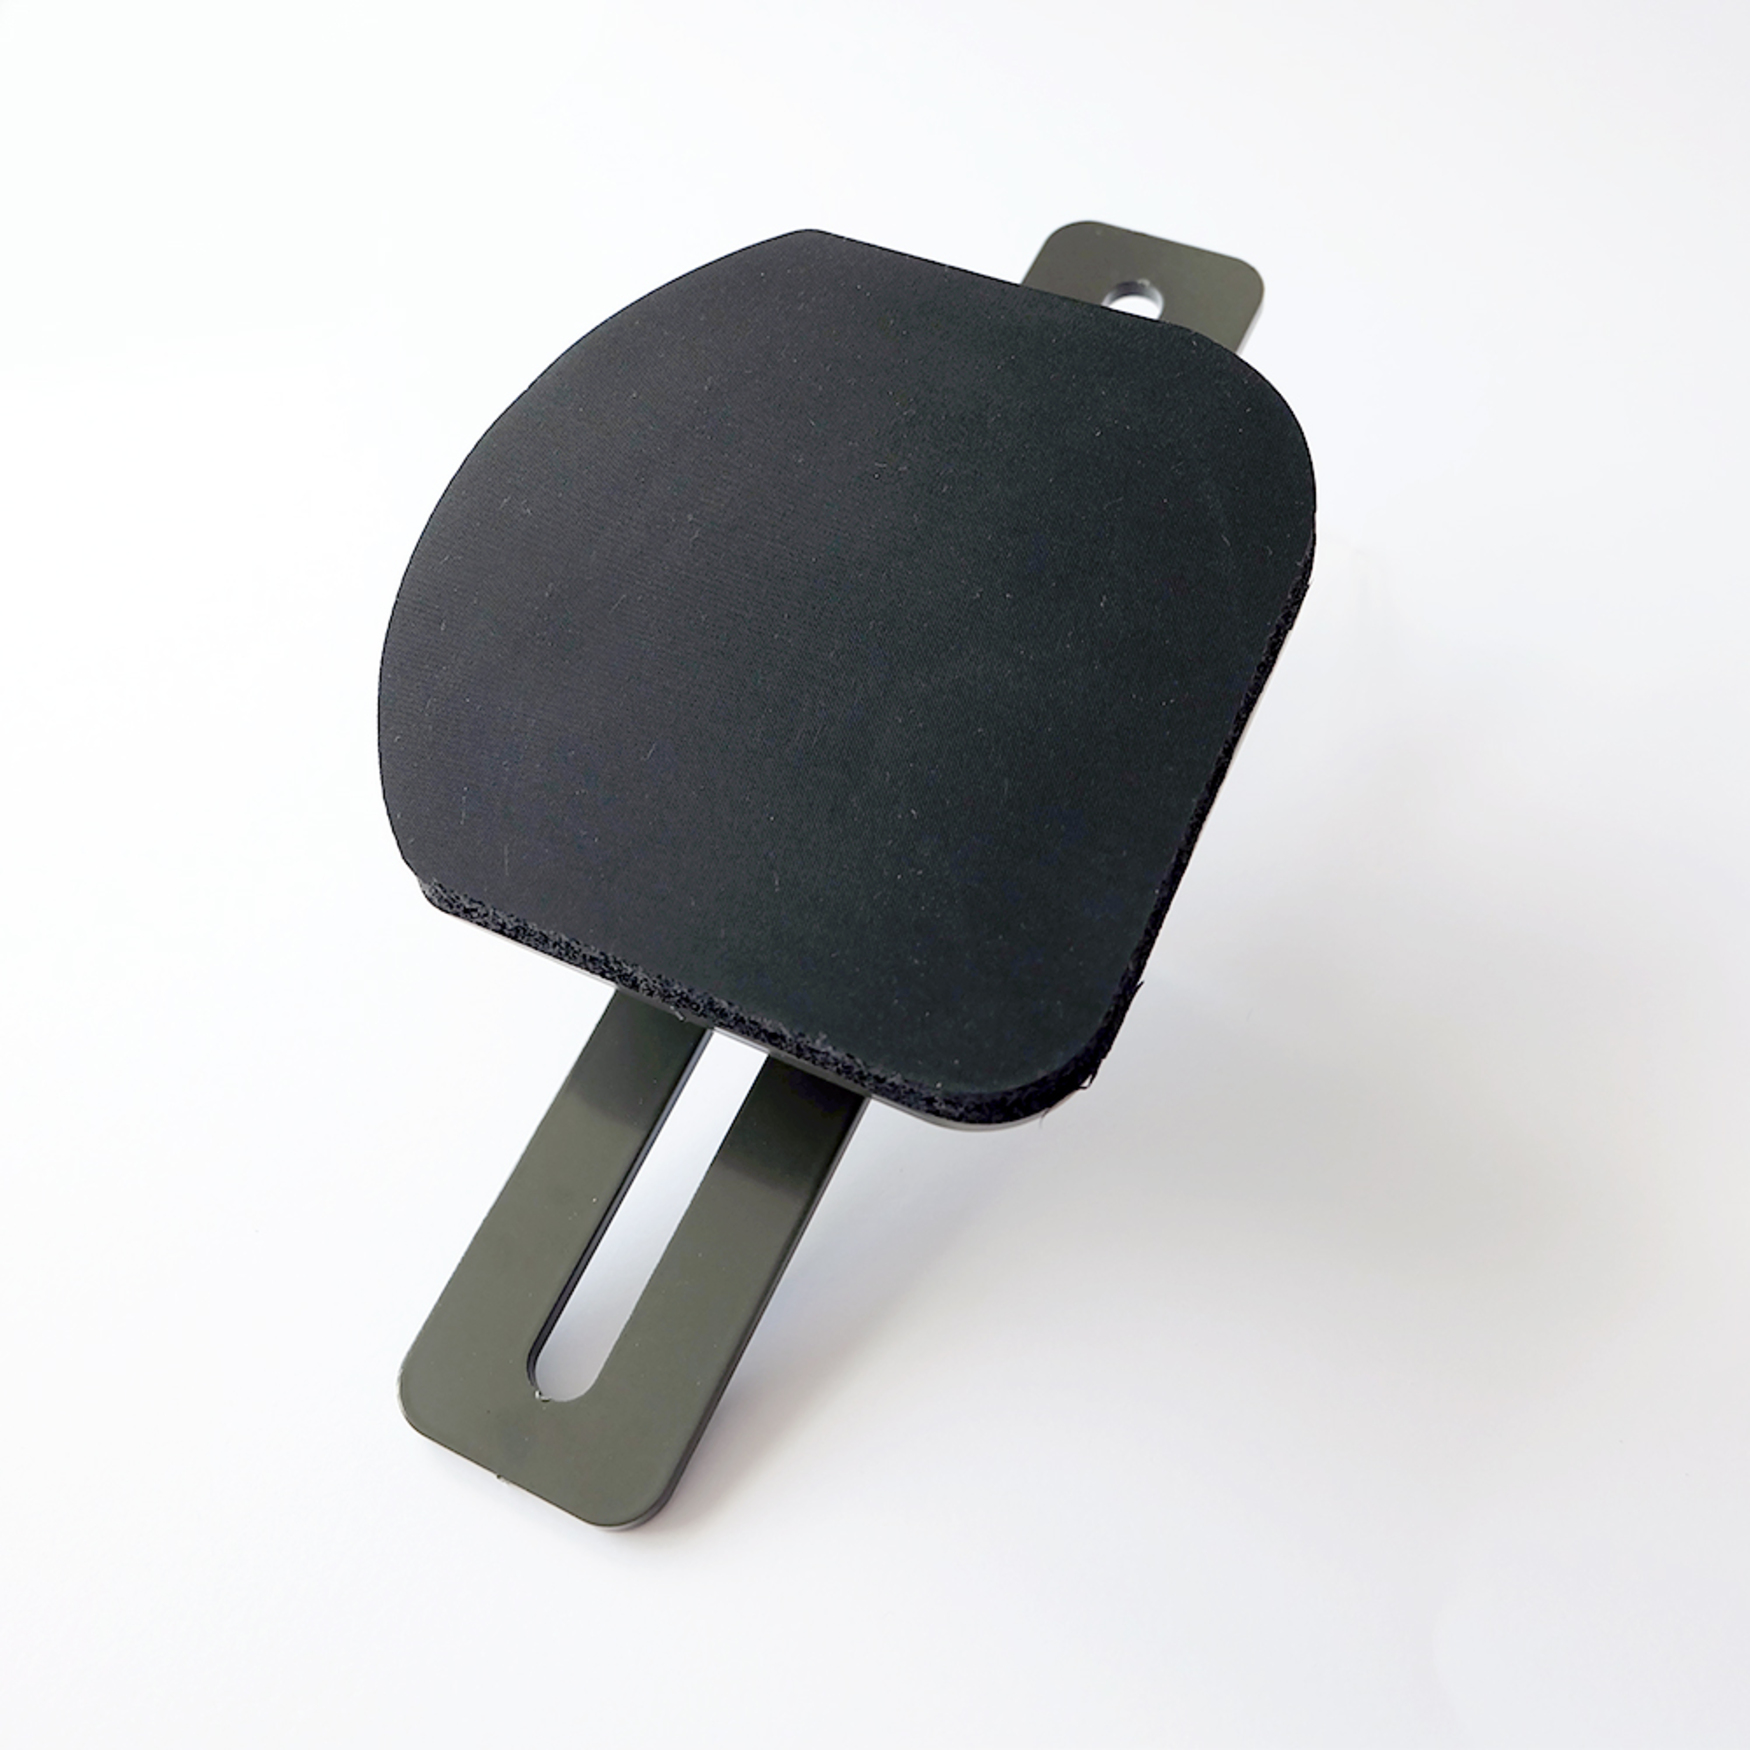 Rounded removable plate 14cm x 14cm suitable for face masks for Secabo heat presses